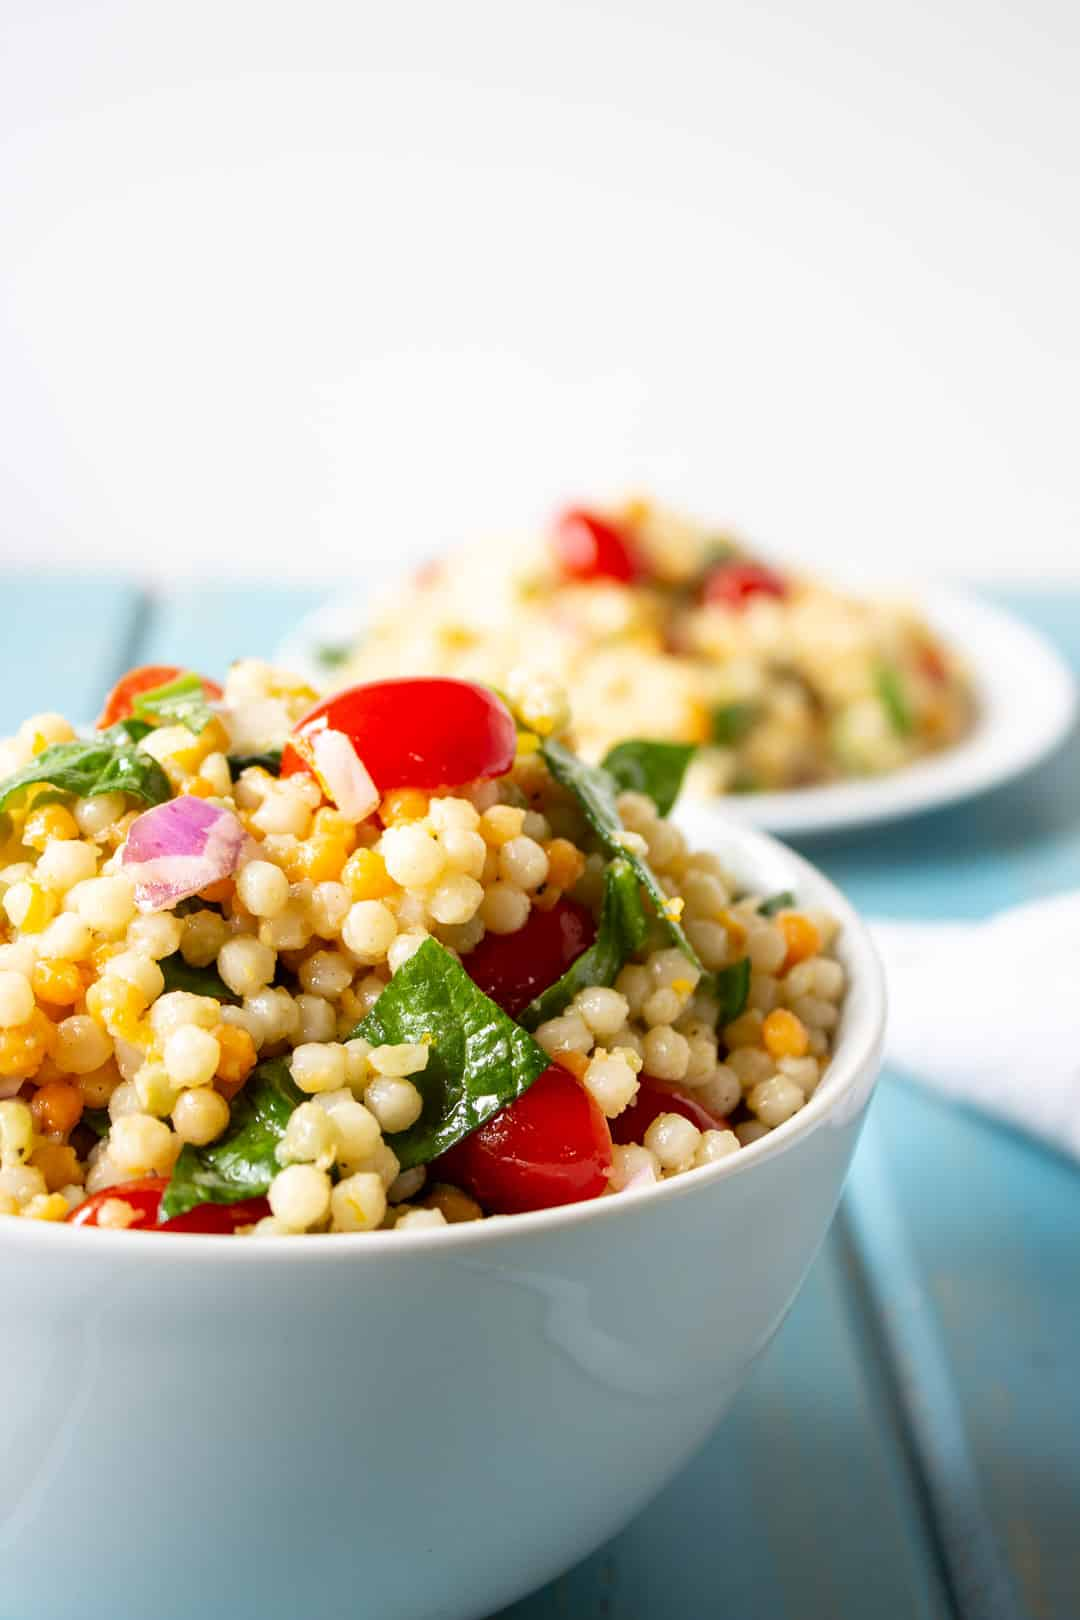 40 delicious & healthy vegan salad recipes picture of couscous salad from recipe roundup